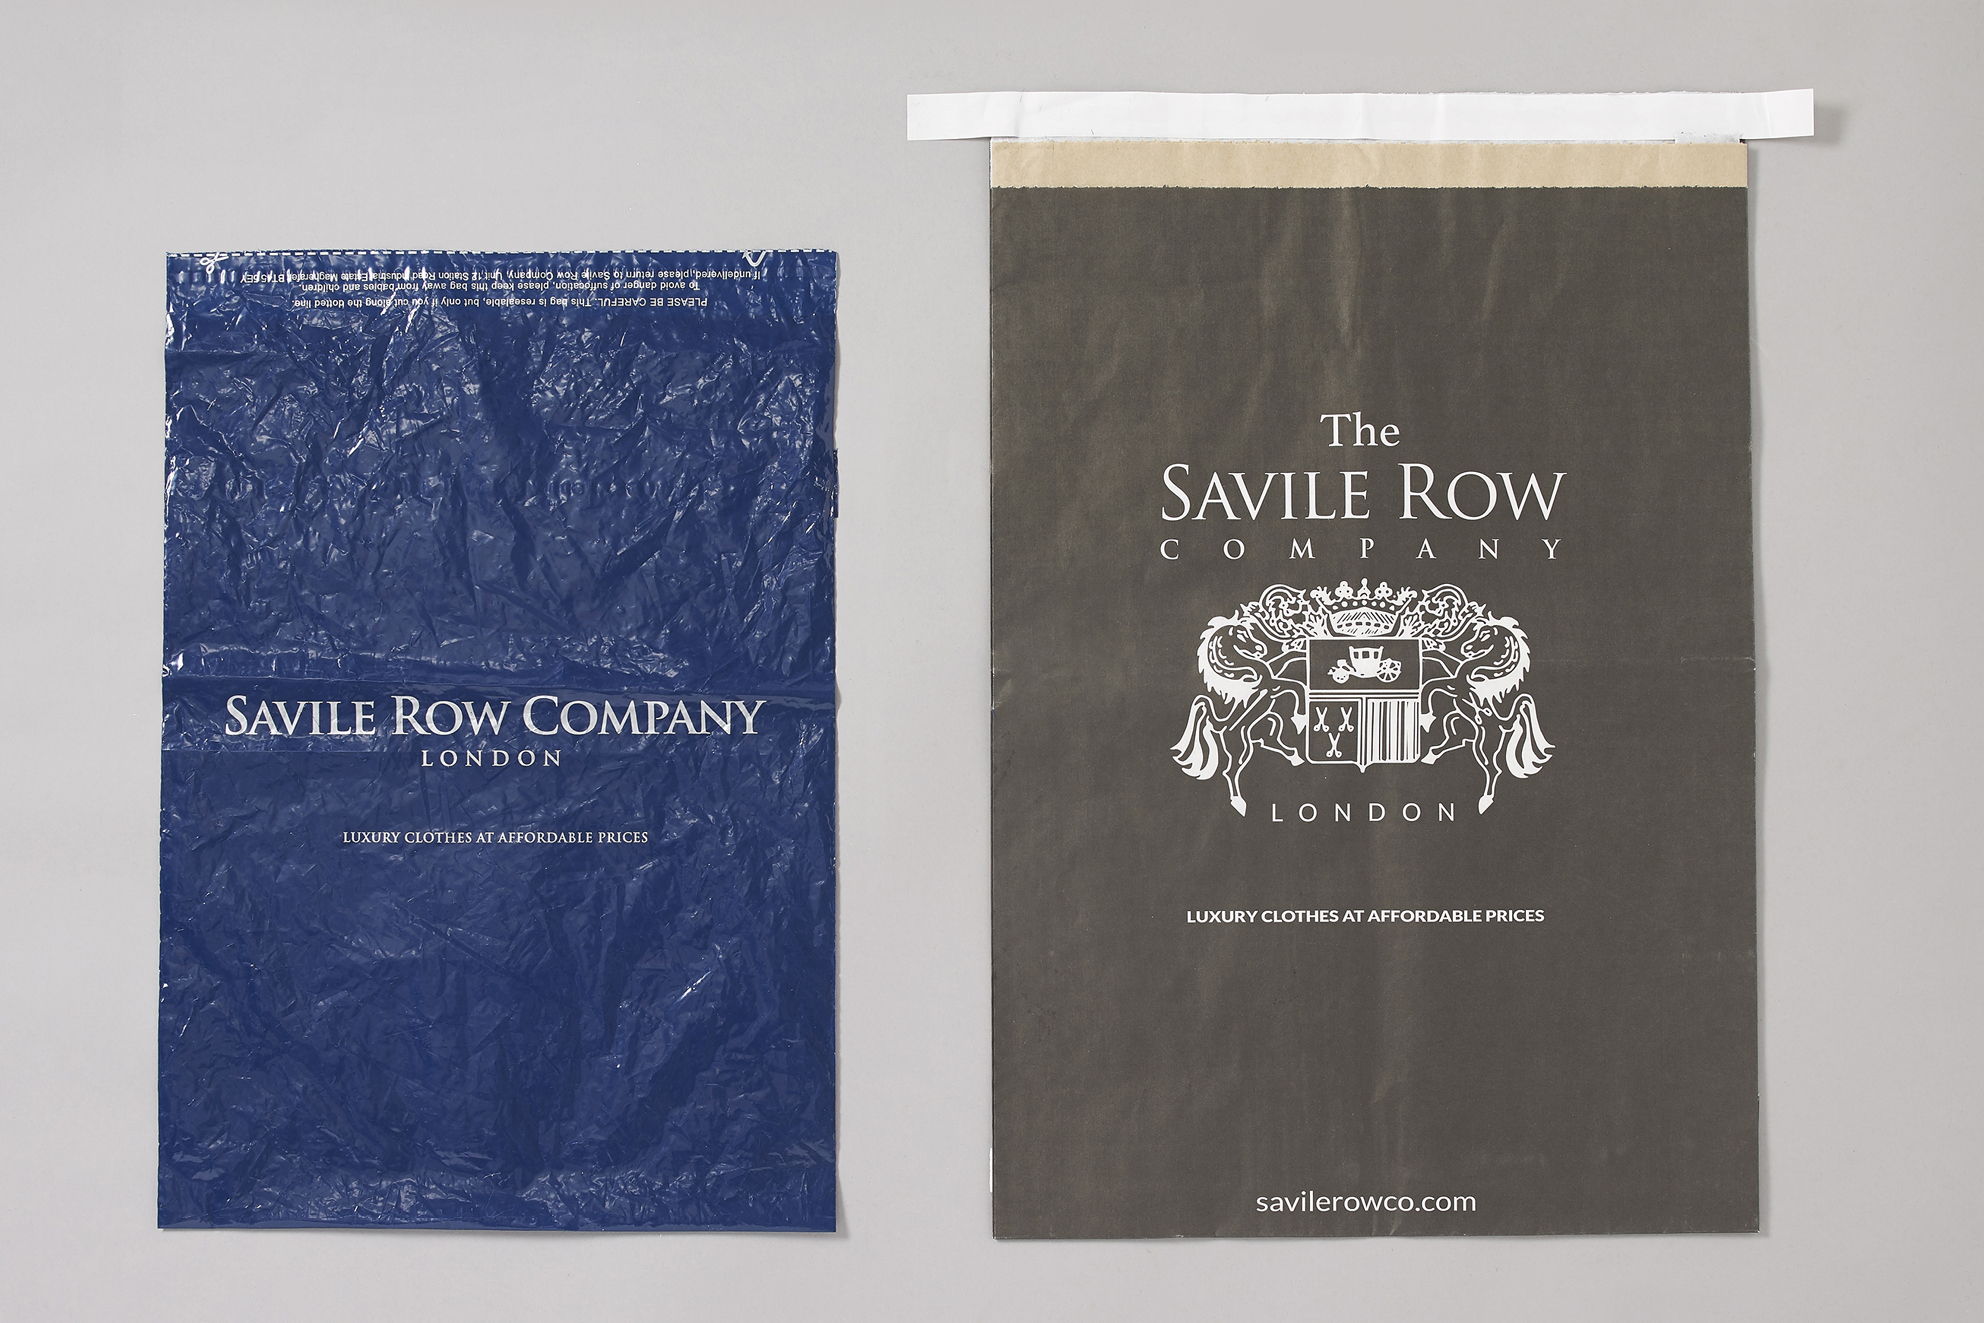 The Savile Row Company has replaced plastic packaging (left) with a recyclable paper bag (right).